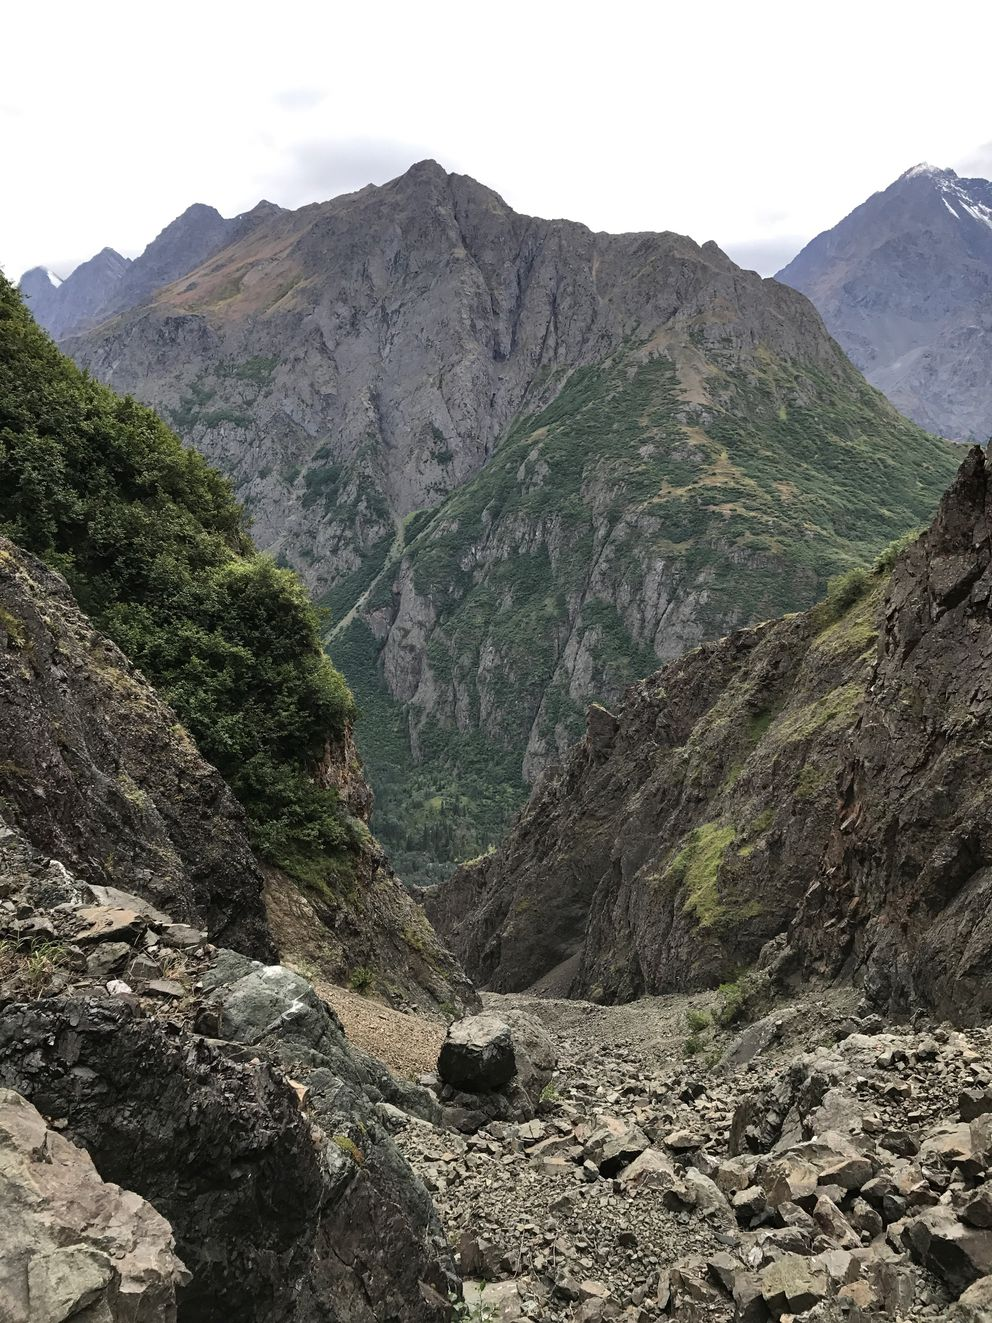 Looking south toward The Mitre from Stivers Gully, near the spot where I spent the night on Monday. (Vicky Ho / Alaska Dispatch News)